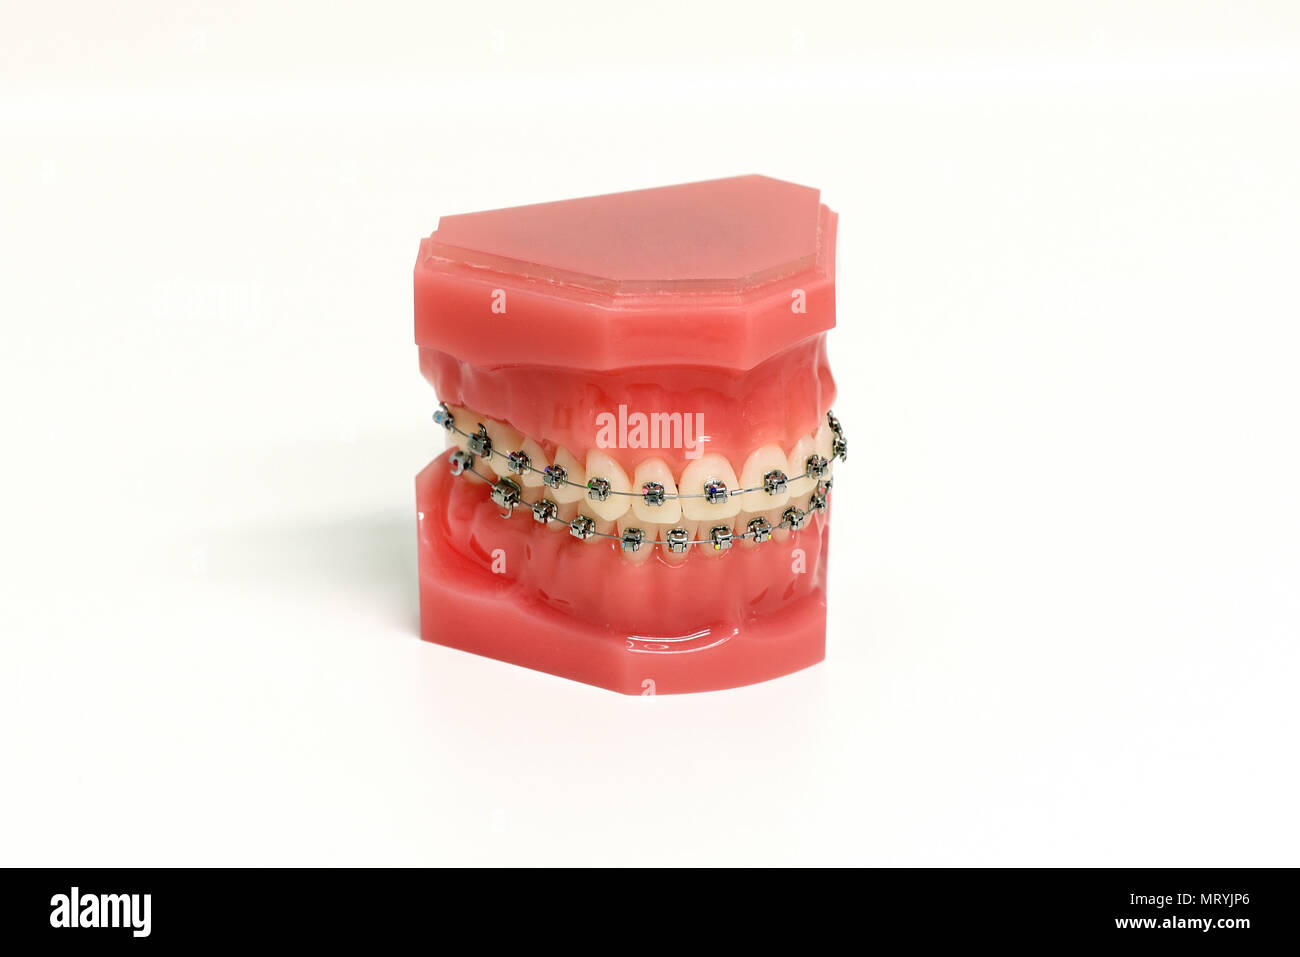 Orthodontic mold of a dental appliance showing a set of upper and lower metal braces attached to teeth for corrective straightening and alignment over - Stock Image